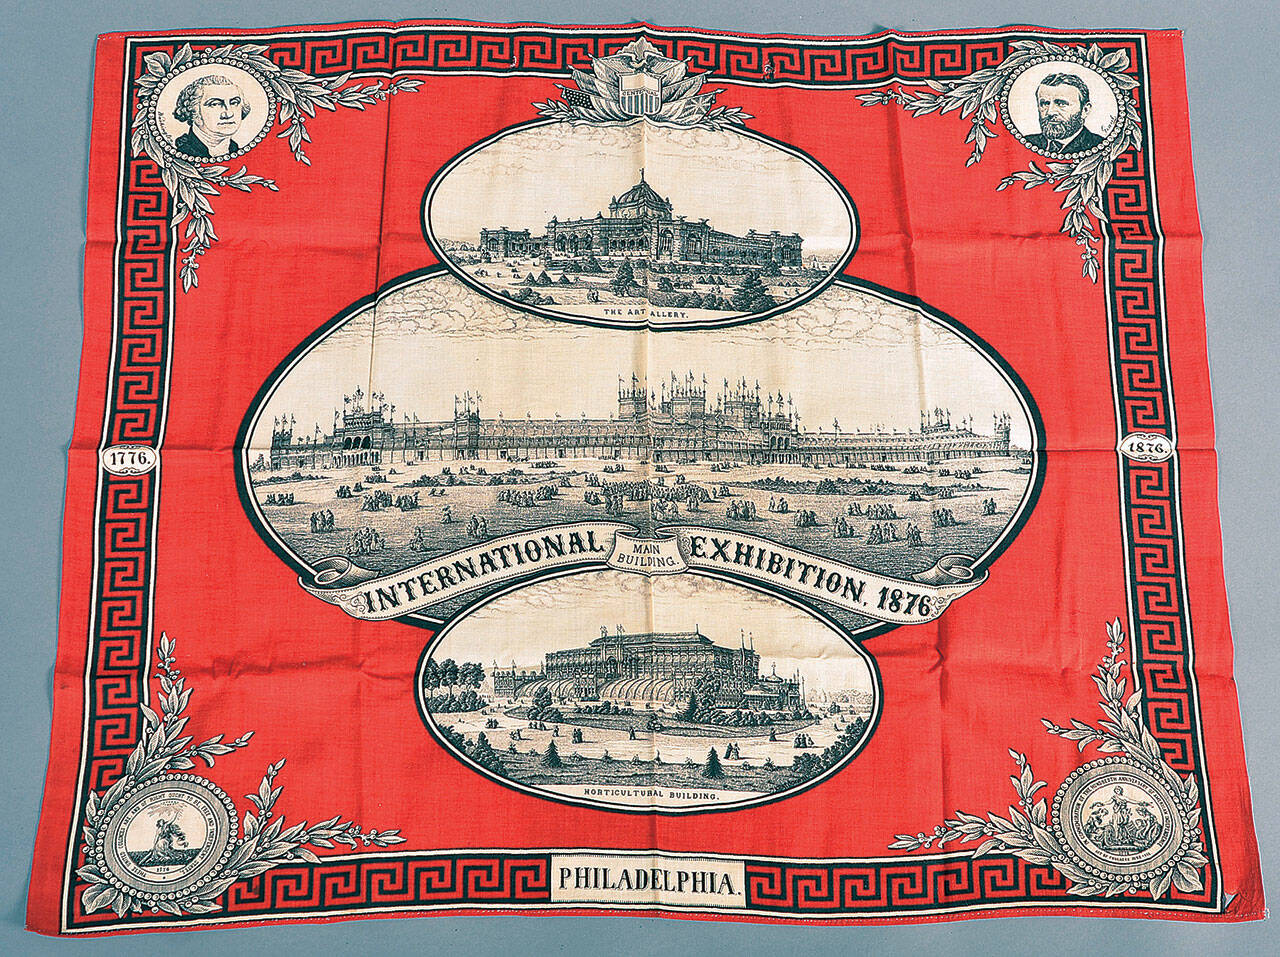 This Centennial Exhibition handkerchief with portraits of Washington and Grant and pictures of exhibition buildings is 22 inches by 28 inches and sold at Conestoga Auction Co. for $70. (Cowles Syndicate Inc.)